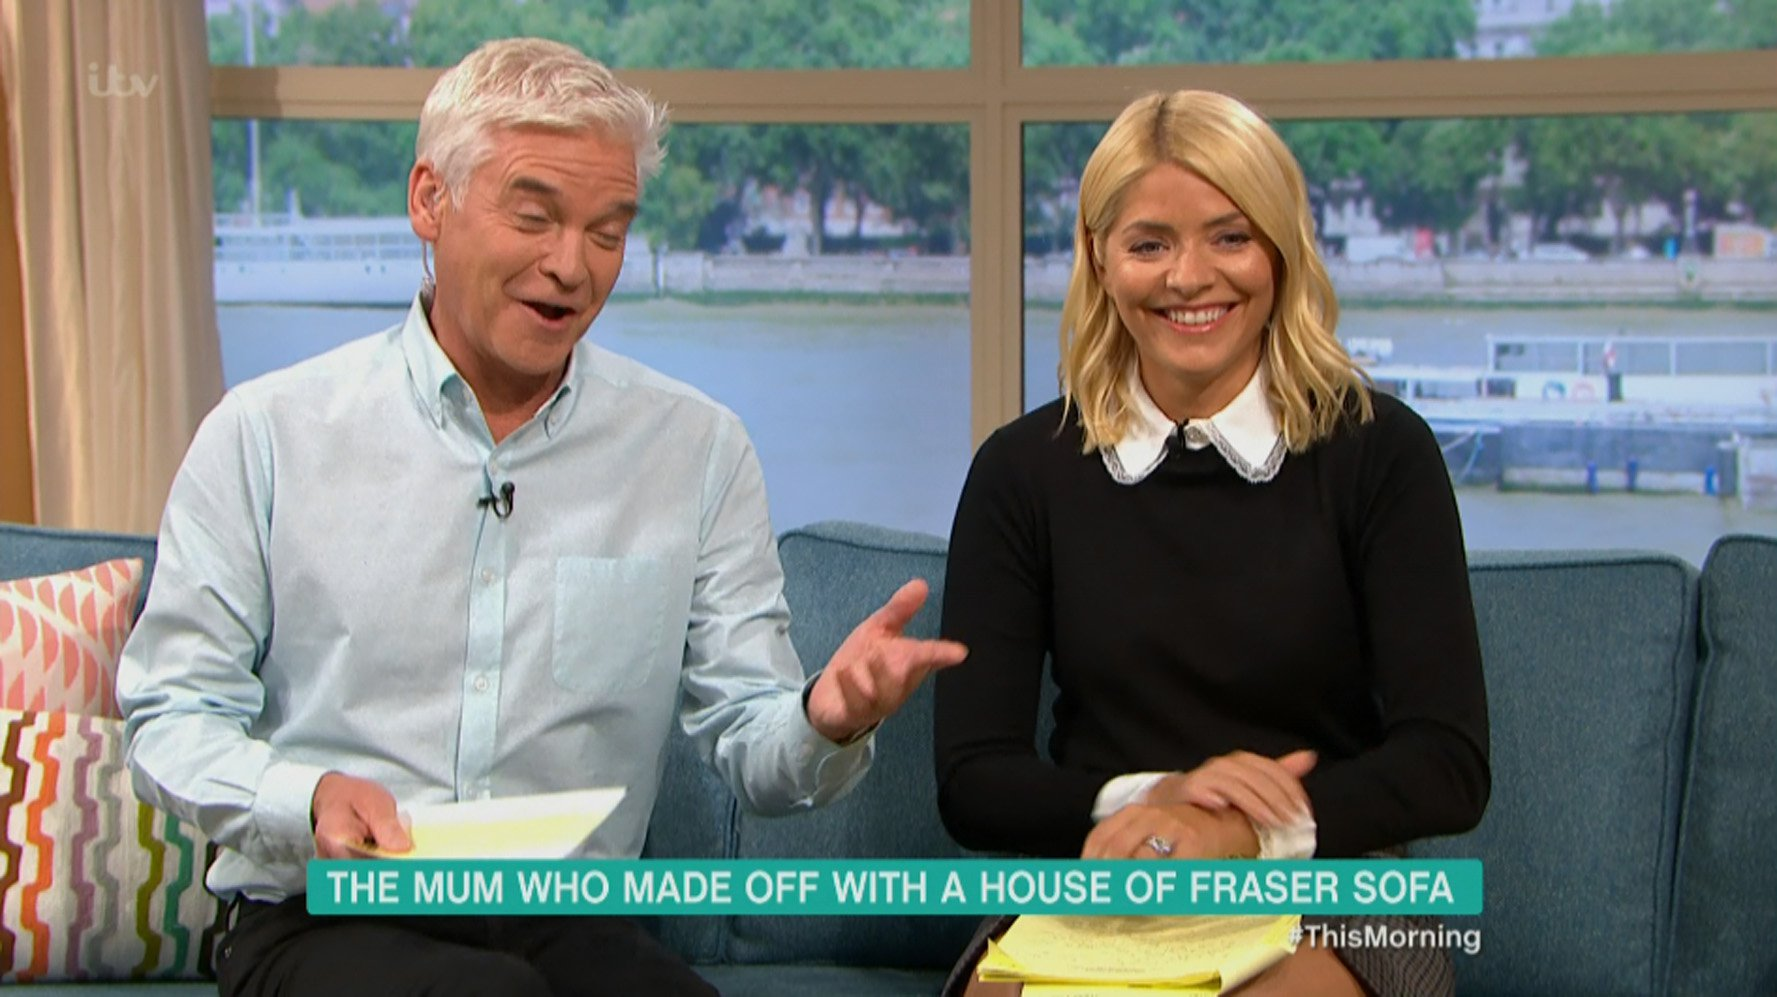 """****Ruckas Videograbs**** (01322) 861777 *IMPORTANT* Please credit ITV for this picture. 10/09/18 This Morning - ITV1 Grabs from this morning's show which saw a woman called Fiona Boston being interviewed by Phillip Schofield and Holly Willoughby on the sofa that she and her family carried out of House of Fraser after she paid for it but was left without it after the chain went into administration. Fiona was joined by consumer expert Alice Beer who said she couldn't condone Fiona's actions and it was illegal but had to admit she loved it. Phillip had to tell Fiona off for repeatedly swearing (saying """"bloody"""") but told Holly that she was his favourite guest in a long time and that he was sad that she had taken the sofa back home with her after the show returned from an advert break following her interview. Office (UK) : 01322 861777 Mobile (UK) : 07742 164 106 **IMPORTANT - PLEASE READ** The video grabs supplied by Ruckas Pictures always remain the copyright of the programme makers, we provide a service to purely capture and supply the images to the client, securing the copyright of the images will always remain the responsibility of the publisher at all times. Standard terms, conditions & minimum fees apply to our videograbs unless varied by agreement prior to publication."""